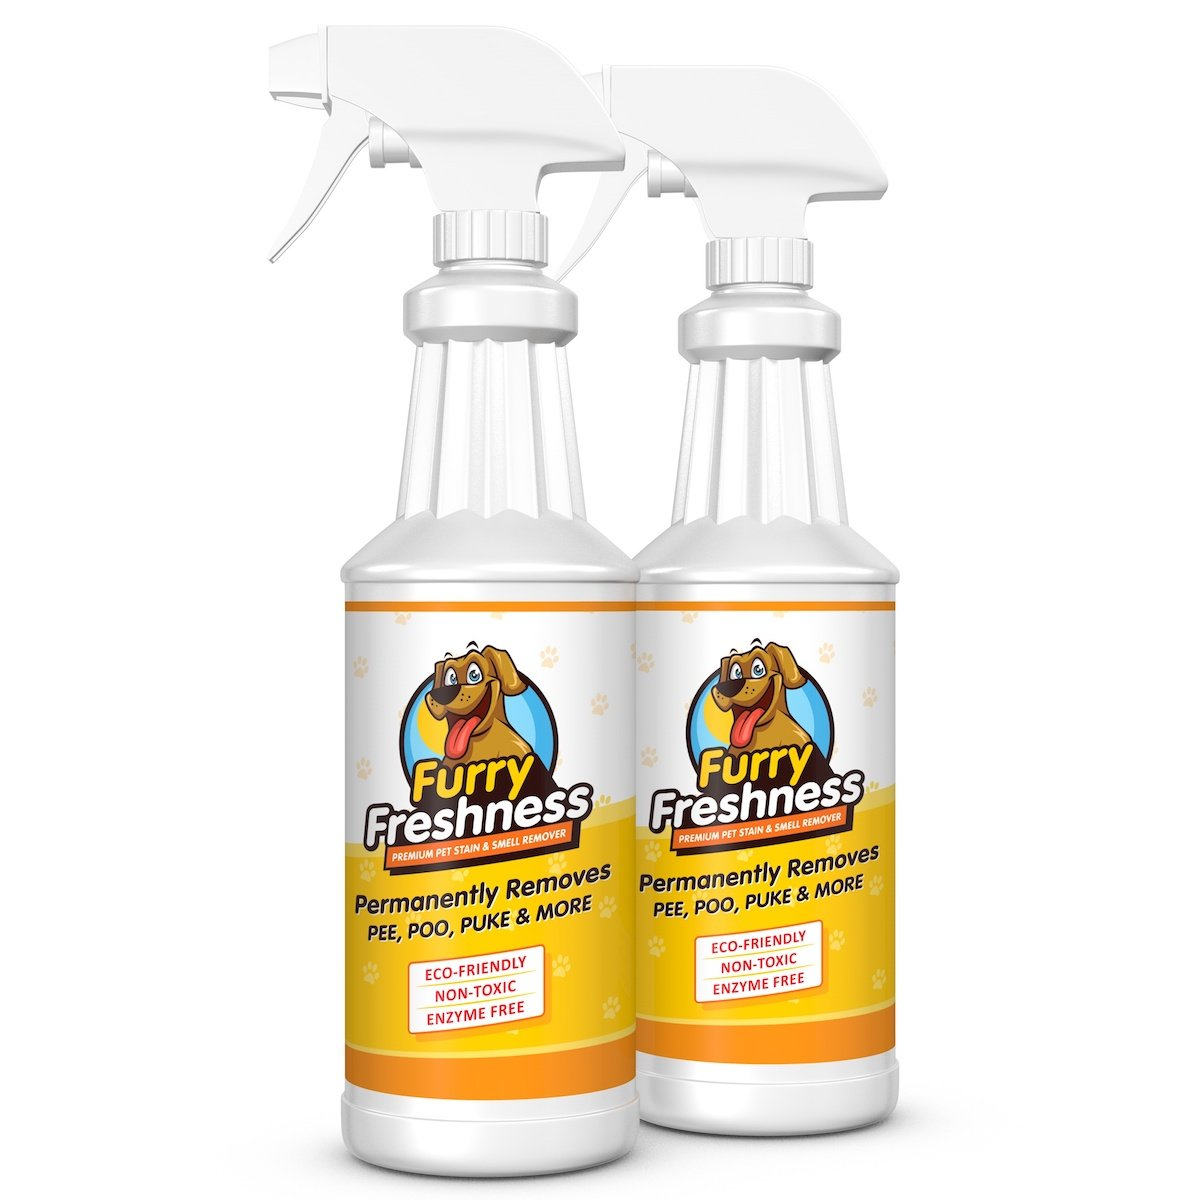 FurryFreshness Premium Pet Stain & Smell Remover - Permanently Evaporates Stains Away (2 Pack - 32oz Bottles)